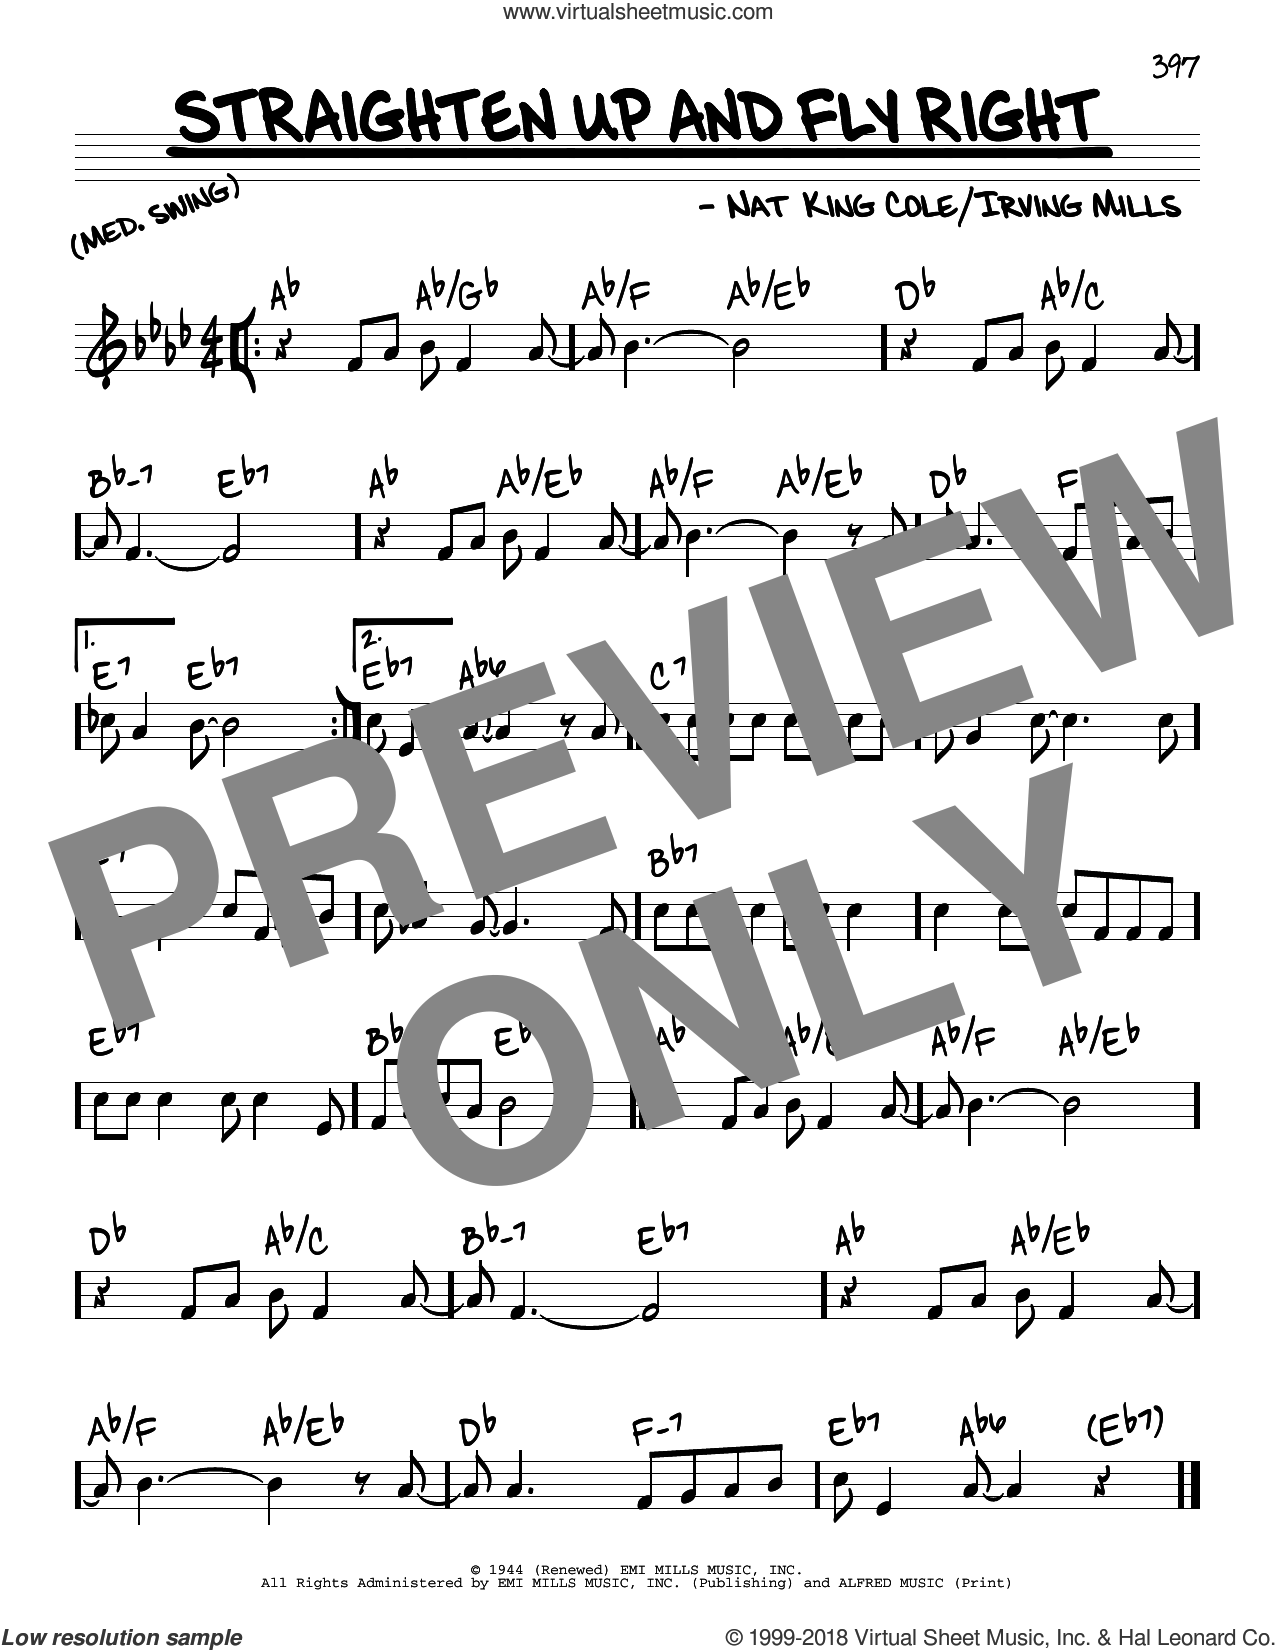 Straighten Up And Fly Right sheet music for voice and other instruments (real book) by Nat King Cole and Irving Mills, intermediate skill level